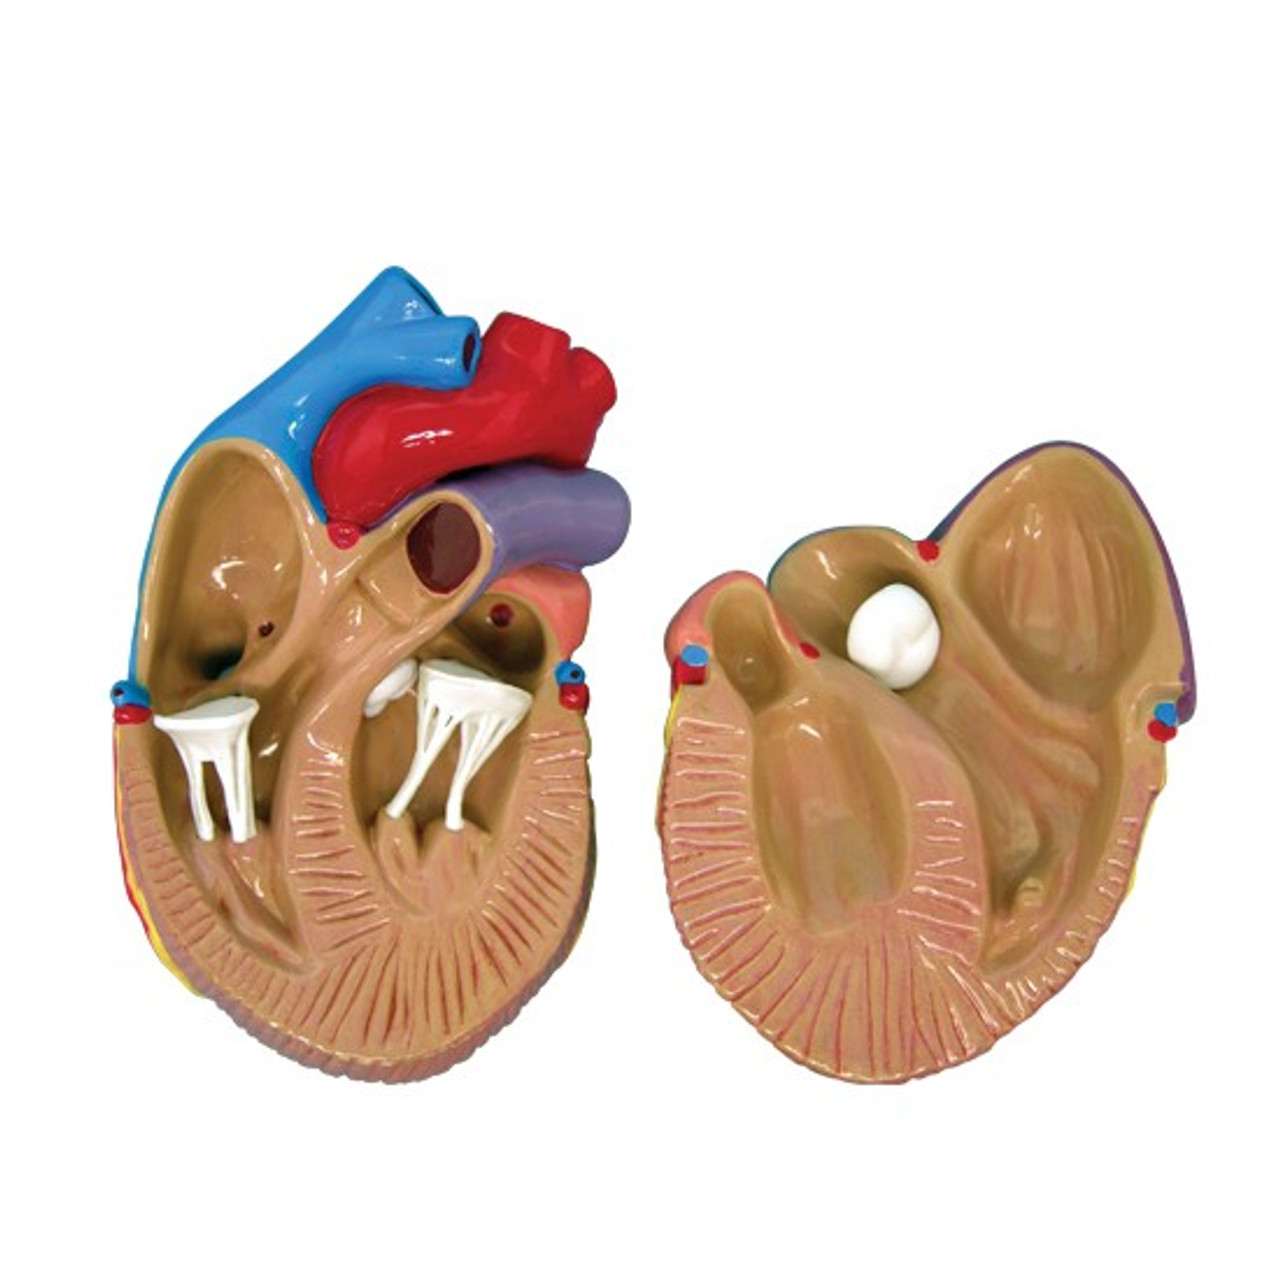 Heart Anatomical Model Mini set